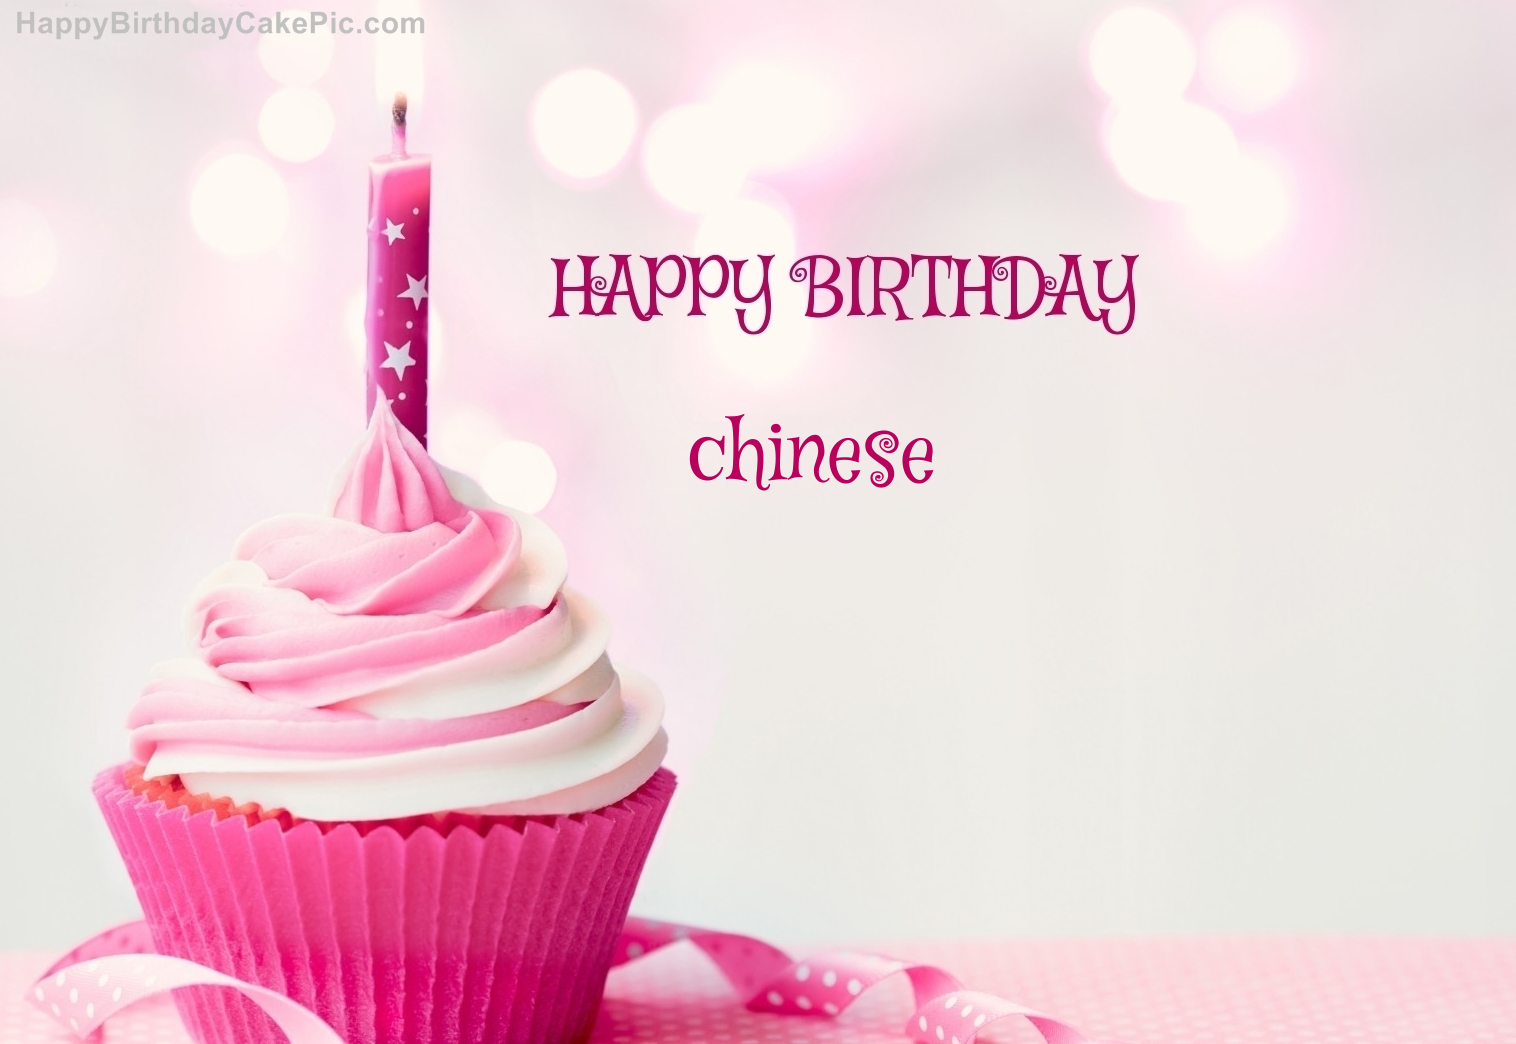 Happy birthday cupcake candle pink cake for chinese write name on happy birthday cupcake candle pink cake m4hsunfo